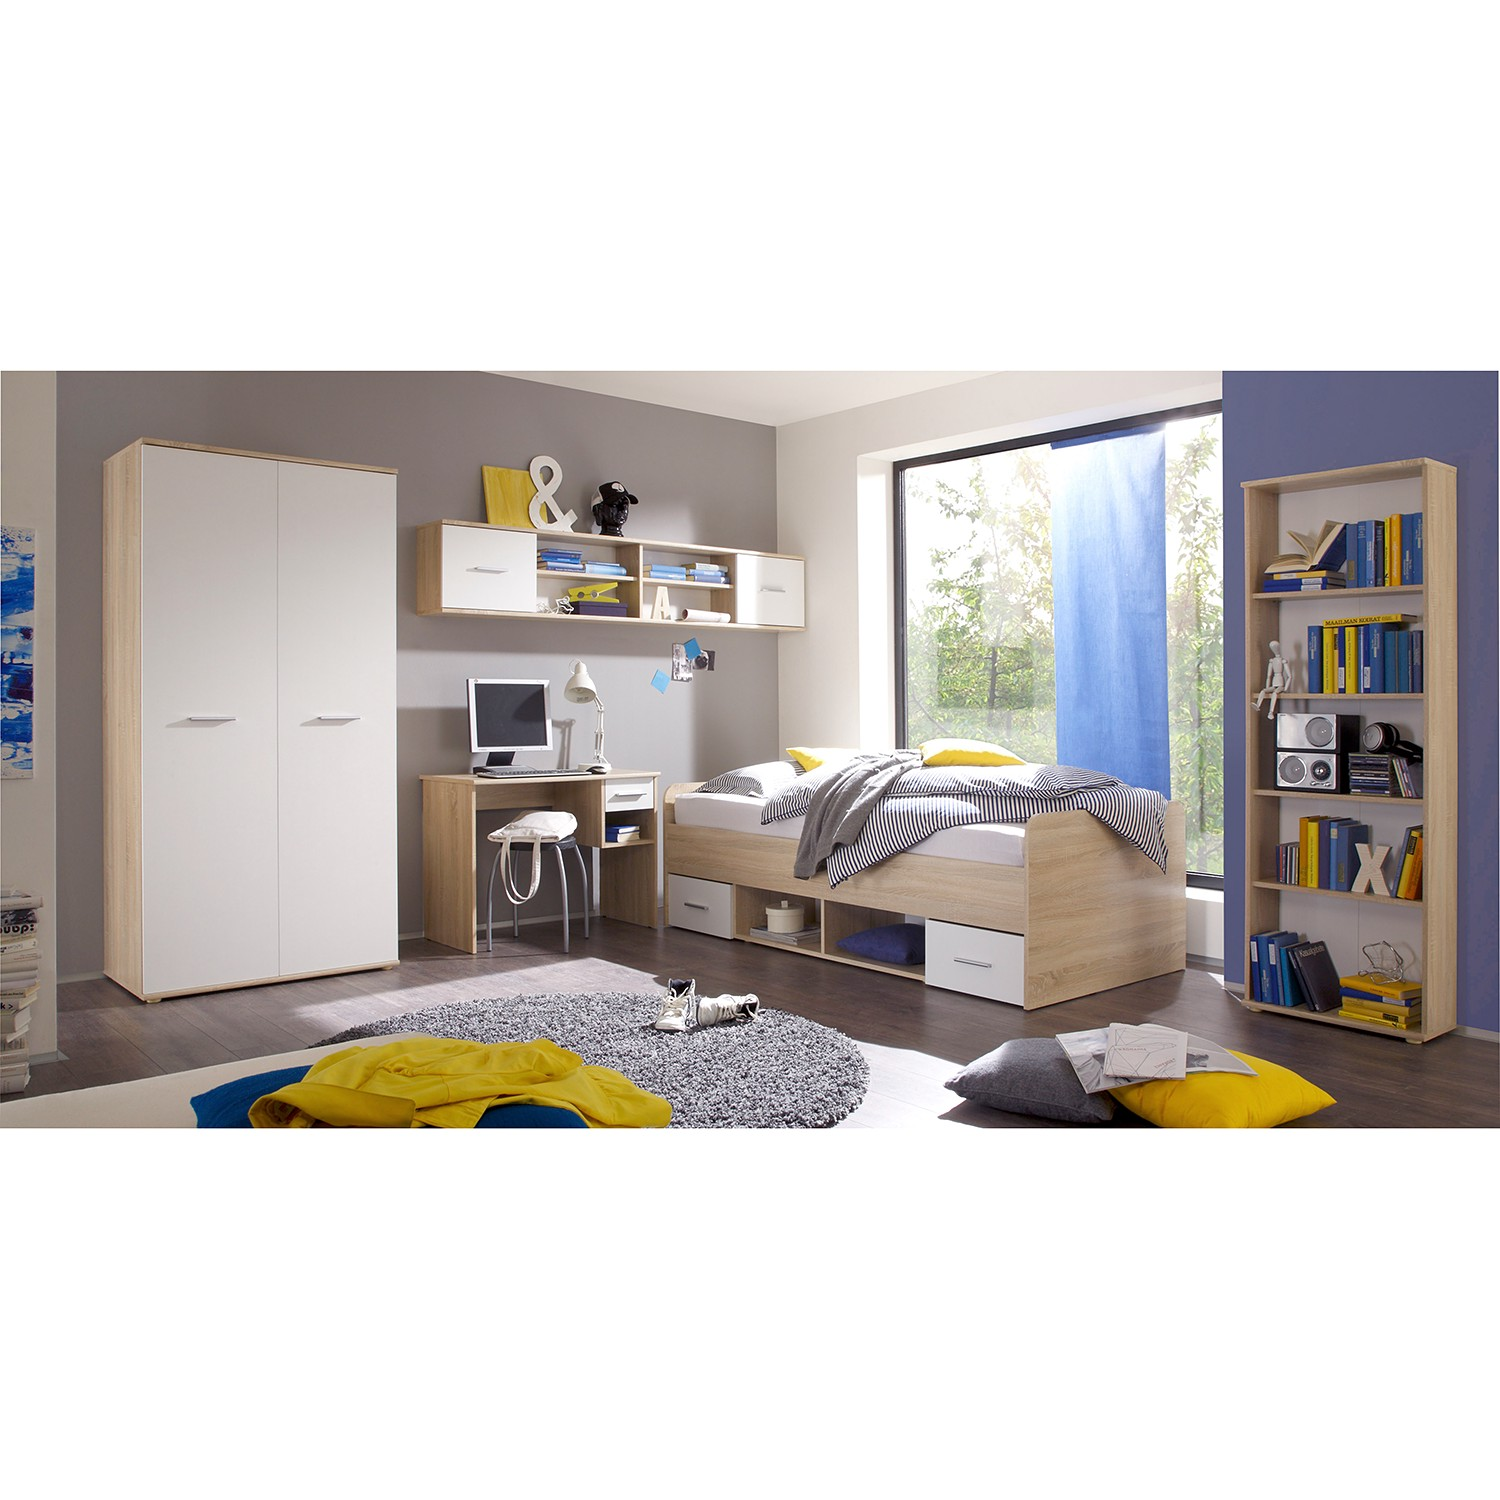 home24 Kinderzimmerset Nanu (4-teilig) | Kinderzimmer > Komplett-Kinderzimmer | Kids Club Collection